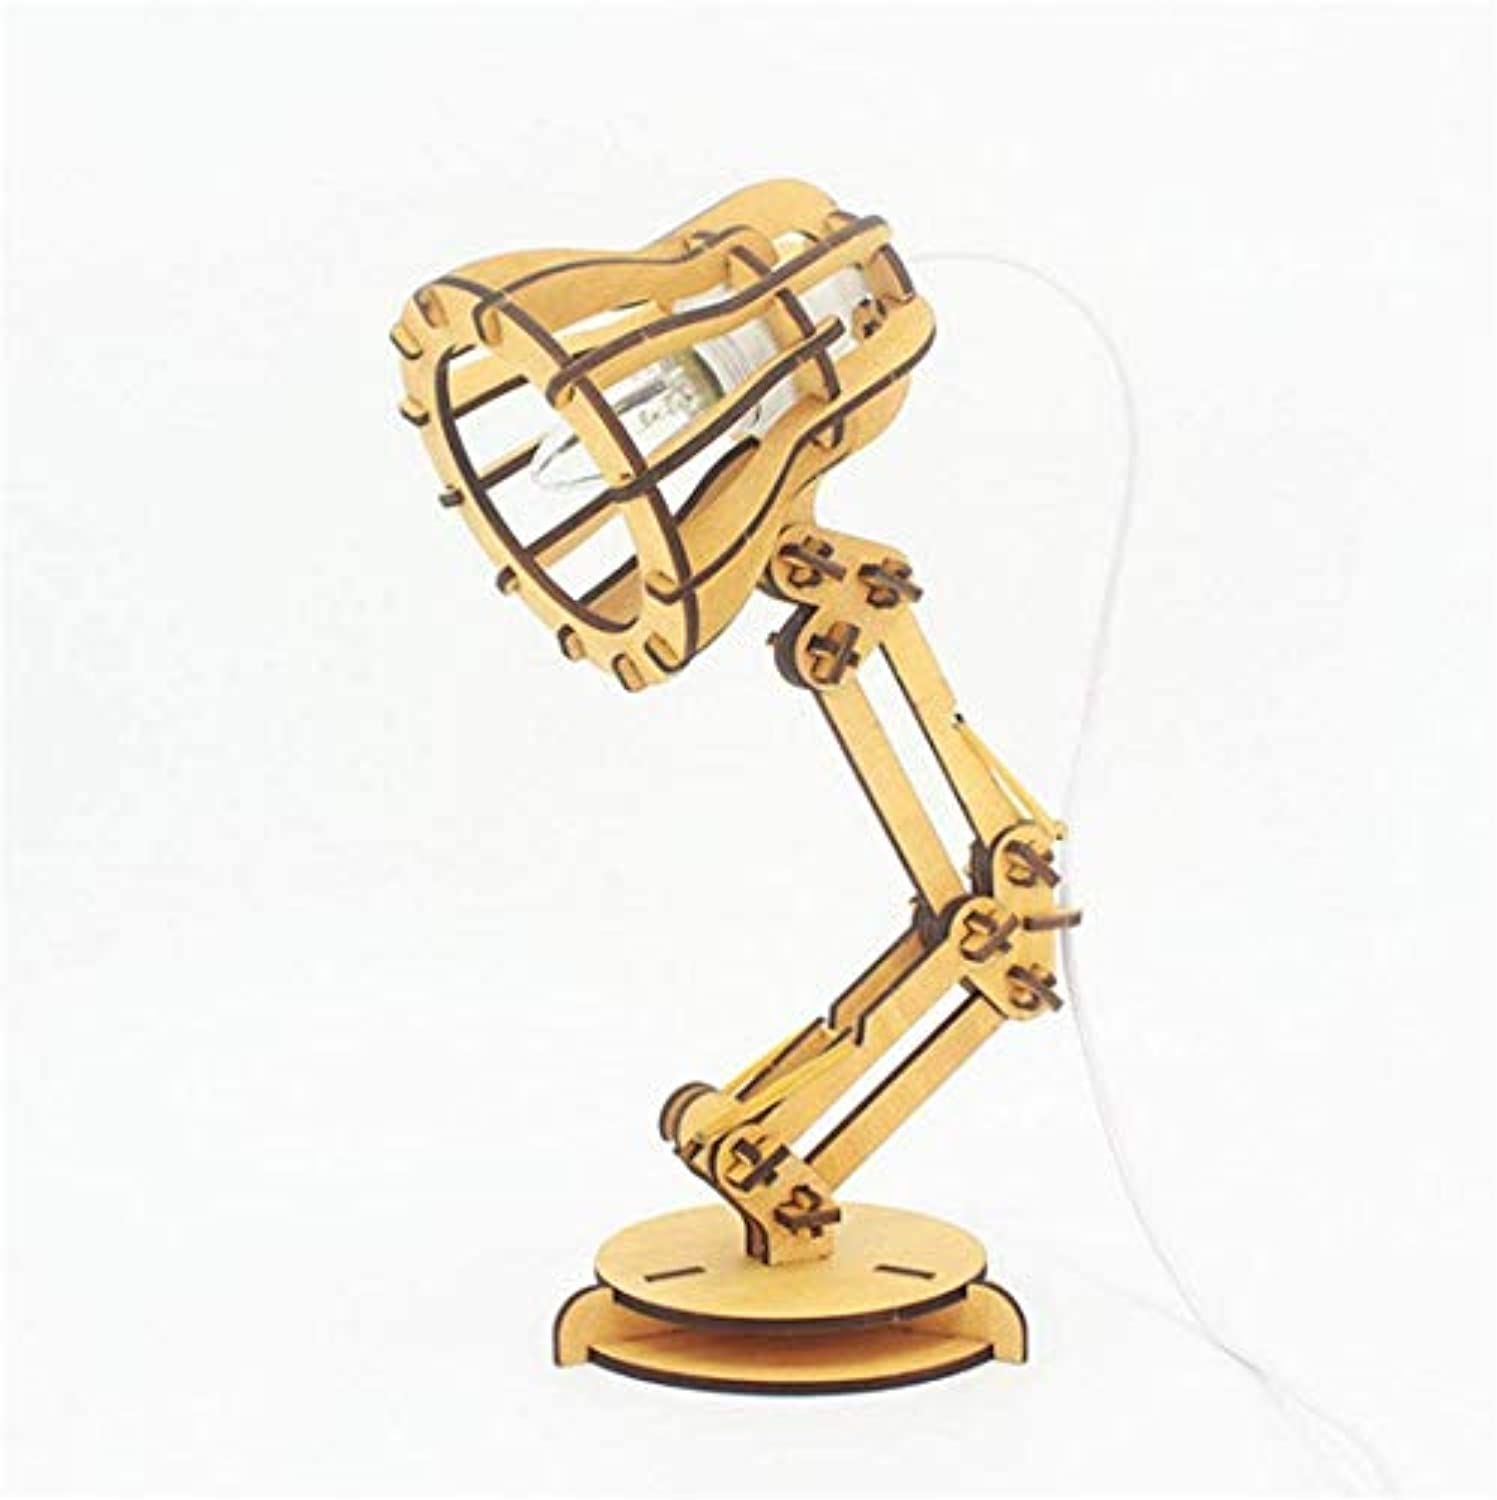 Chandelierrustic Humanoid Wooden E27 Table Lamp Rural Edison Decor Transformable Table Light For Bedside Bedroo Desk